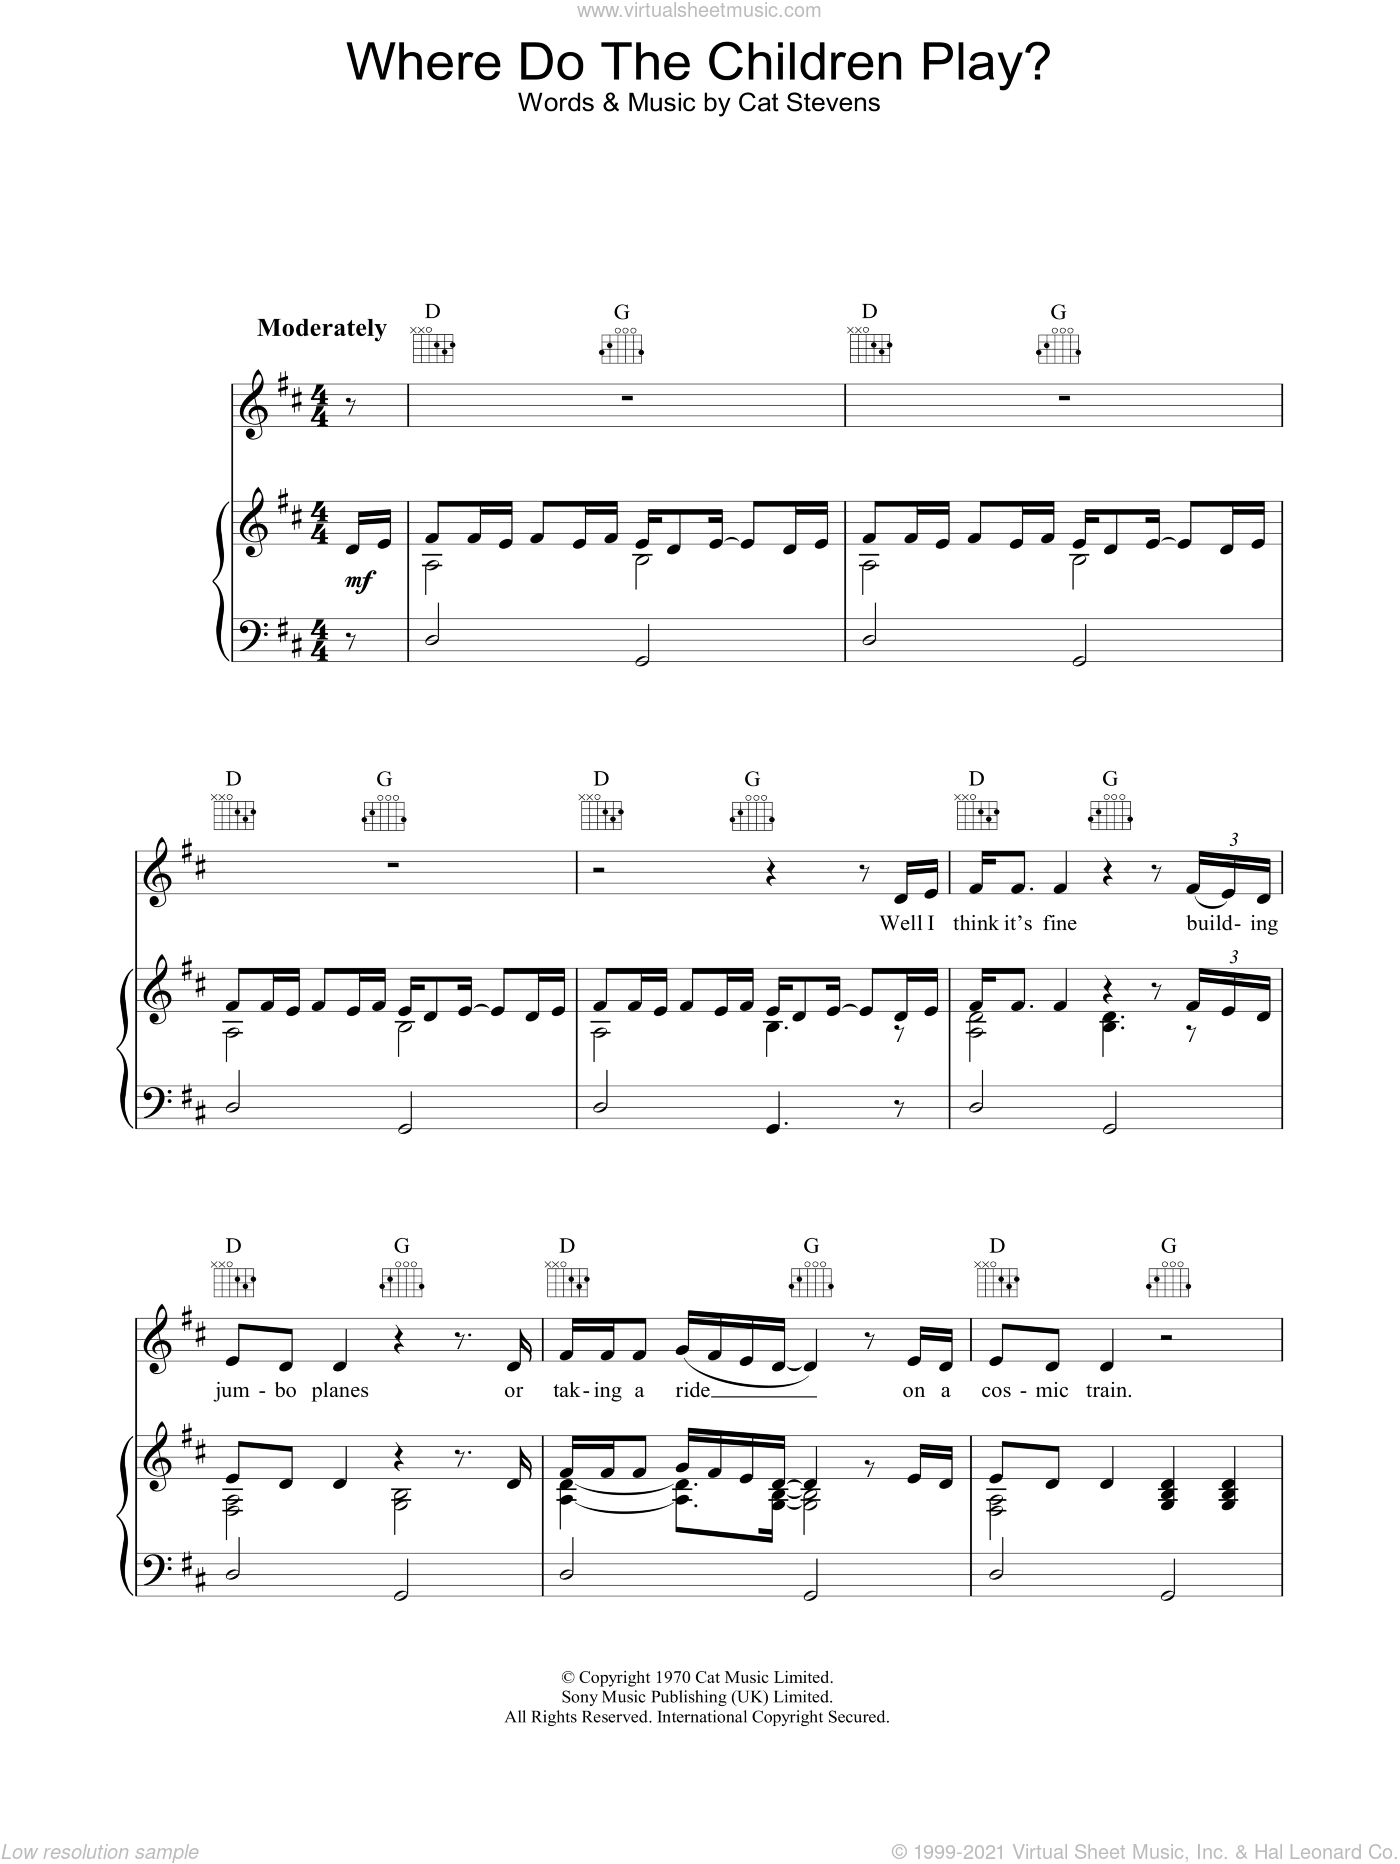 Where Do The Children Play? sheet music for voice, piano or guitar by Cat Stevens